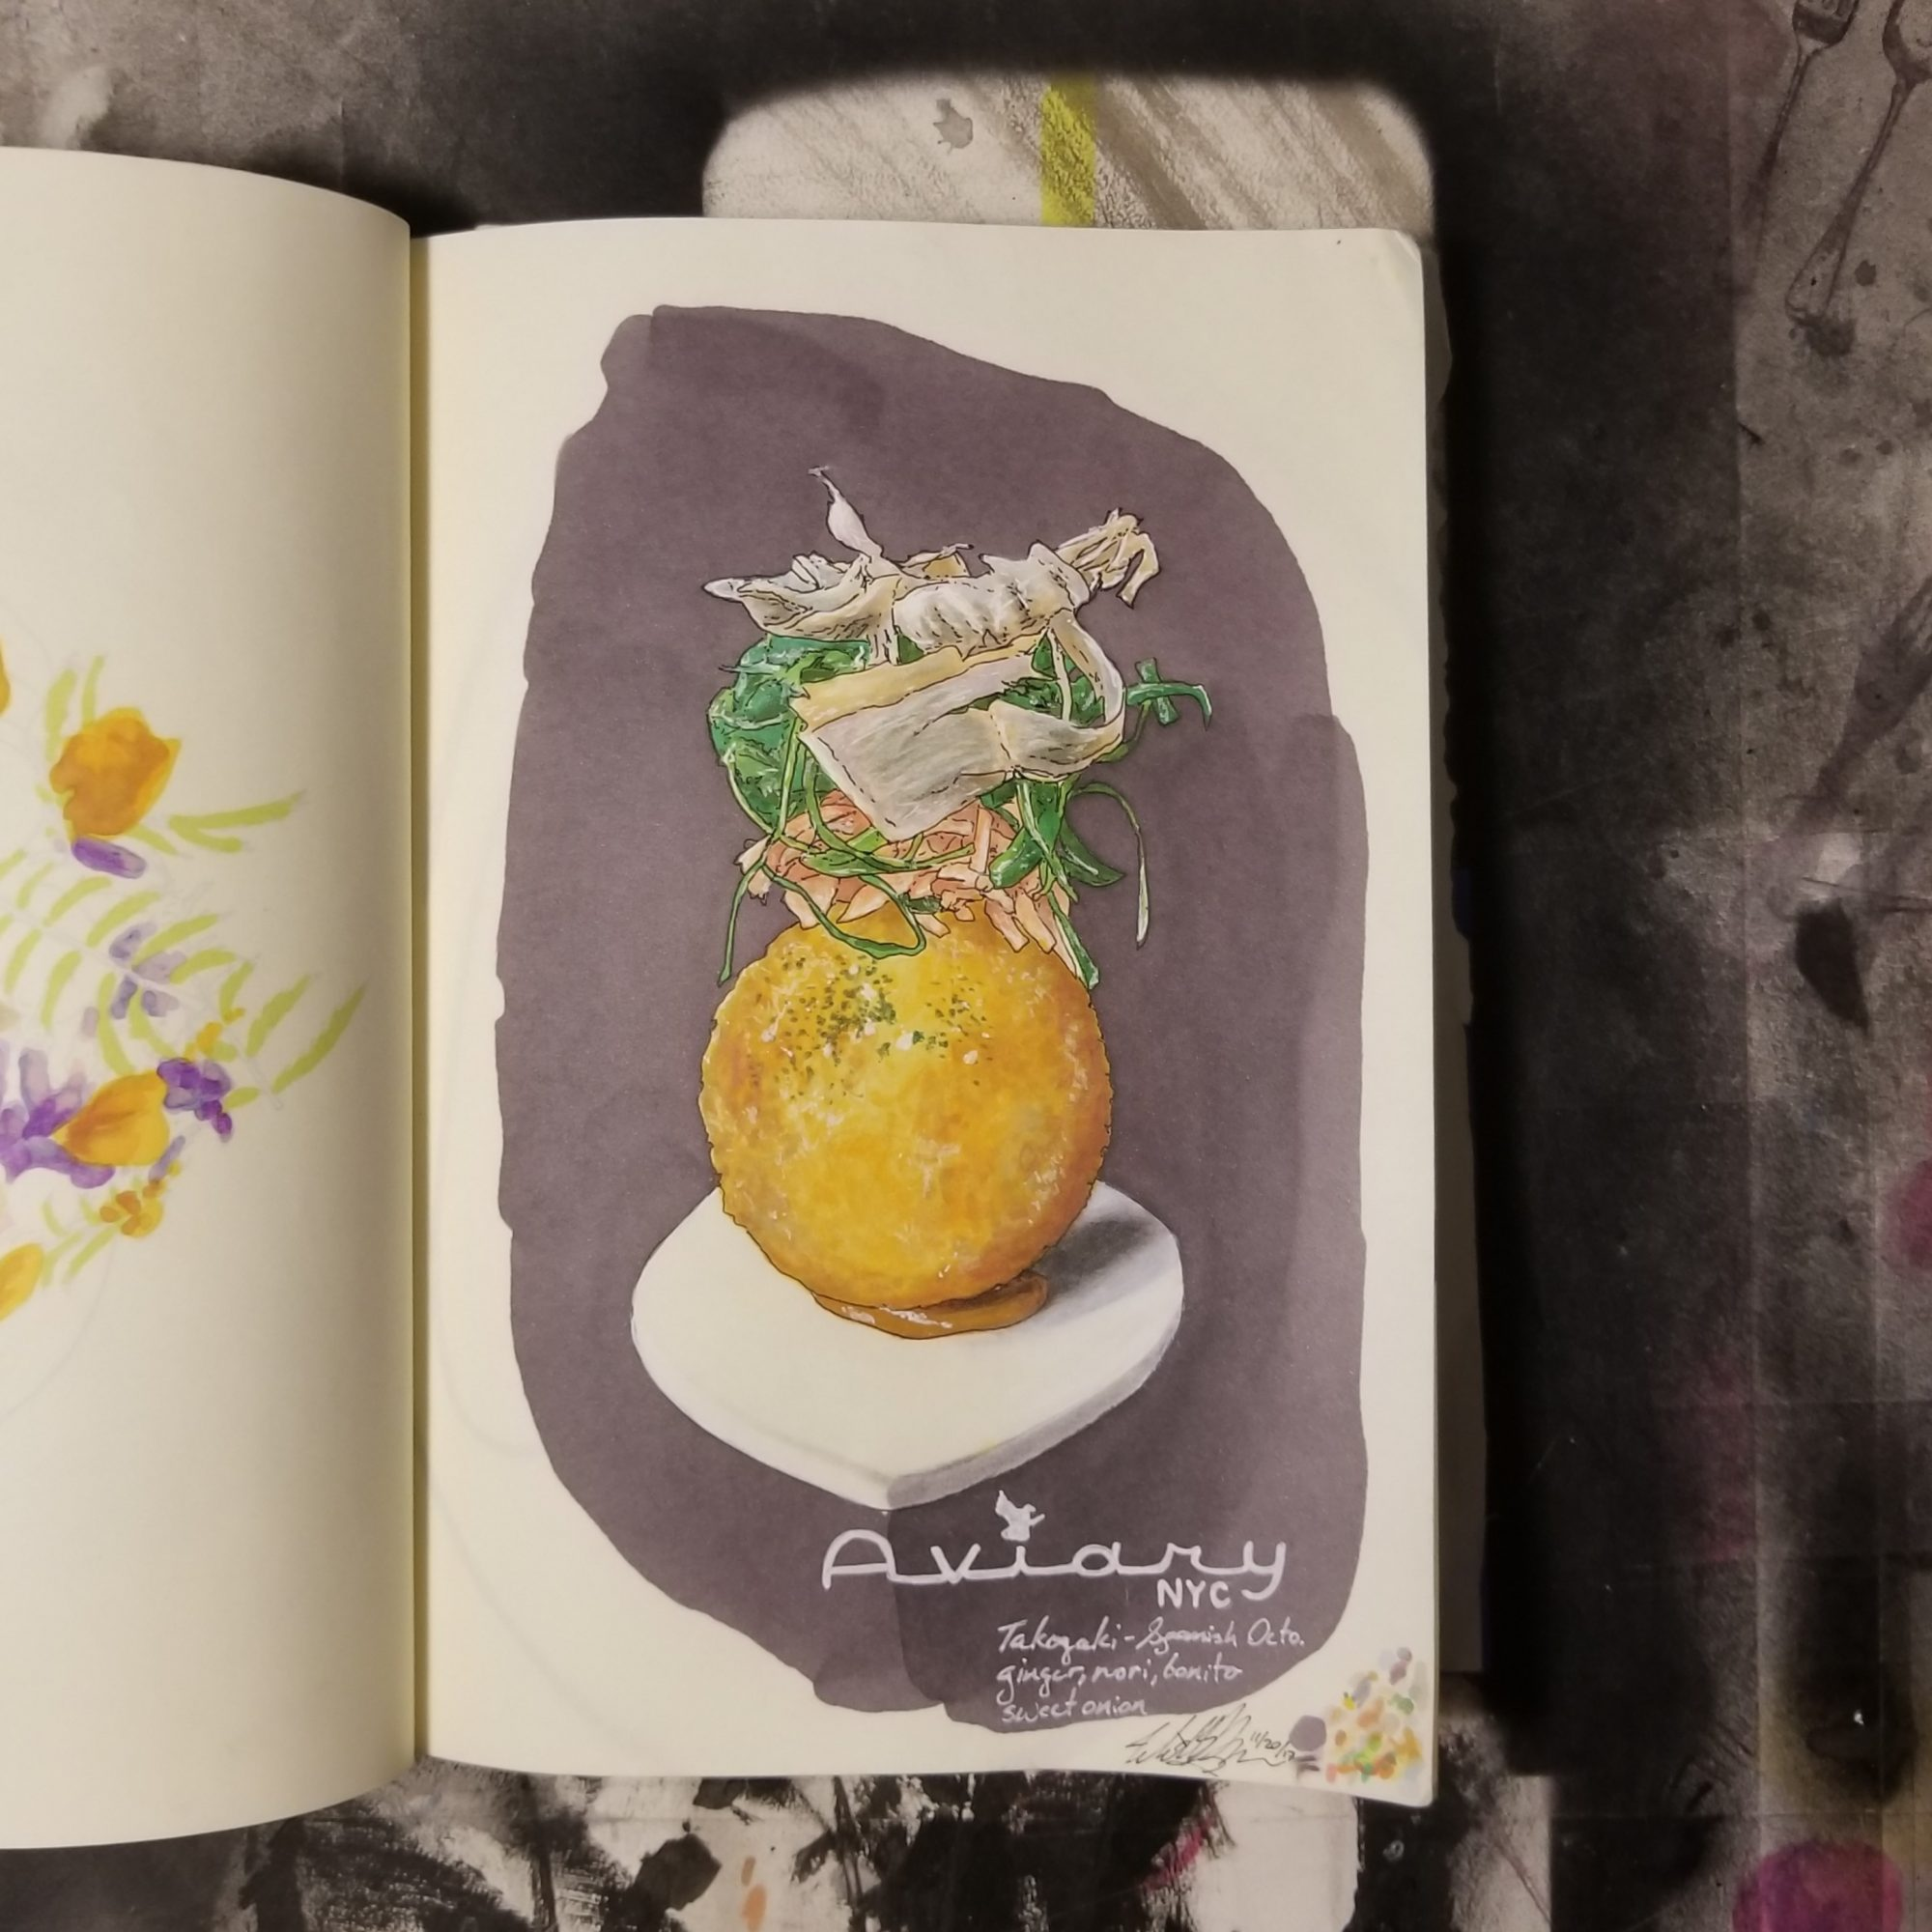 william-brown-culinary-artist-illustration-the-aviary-blogpost.jpg